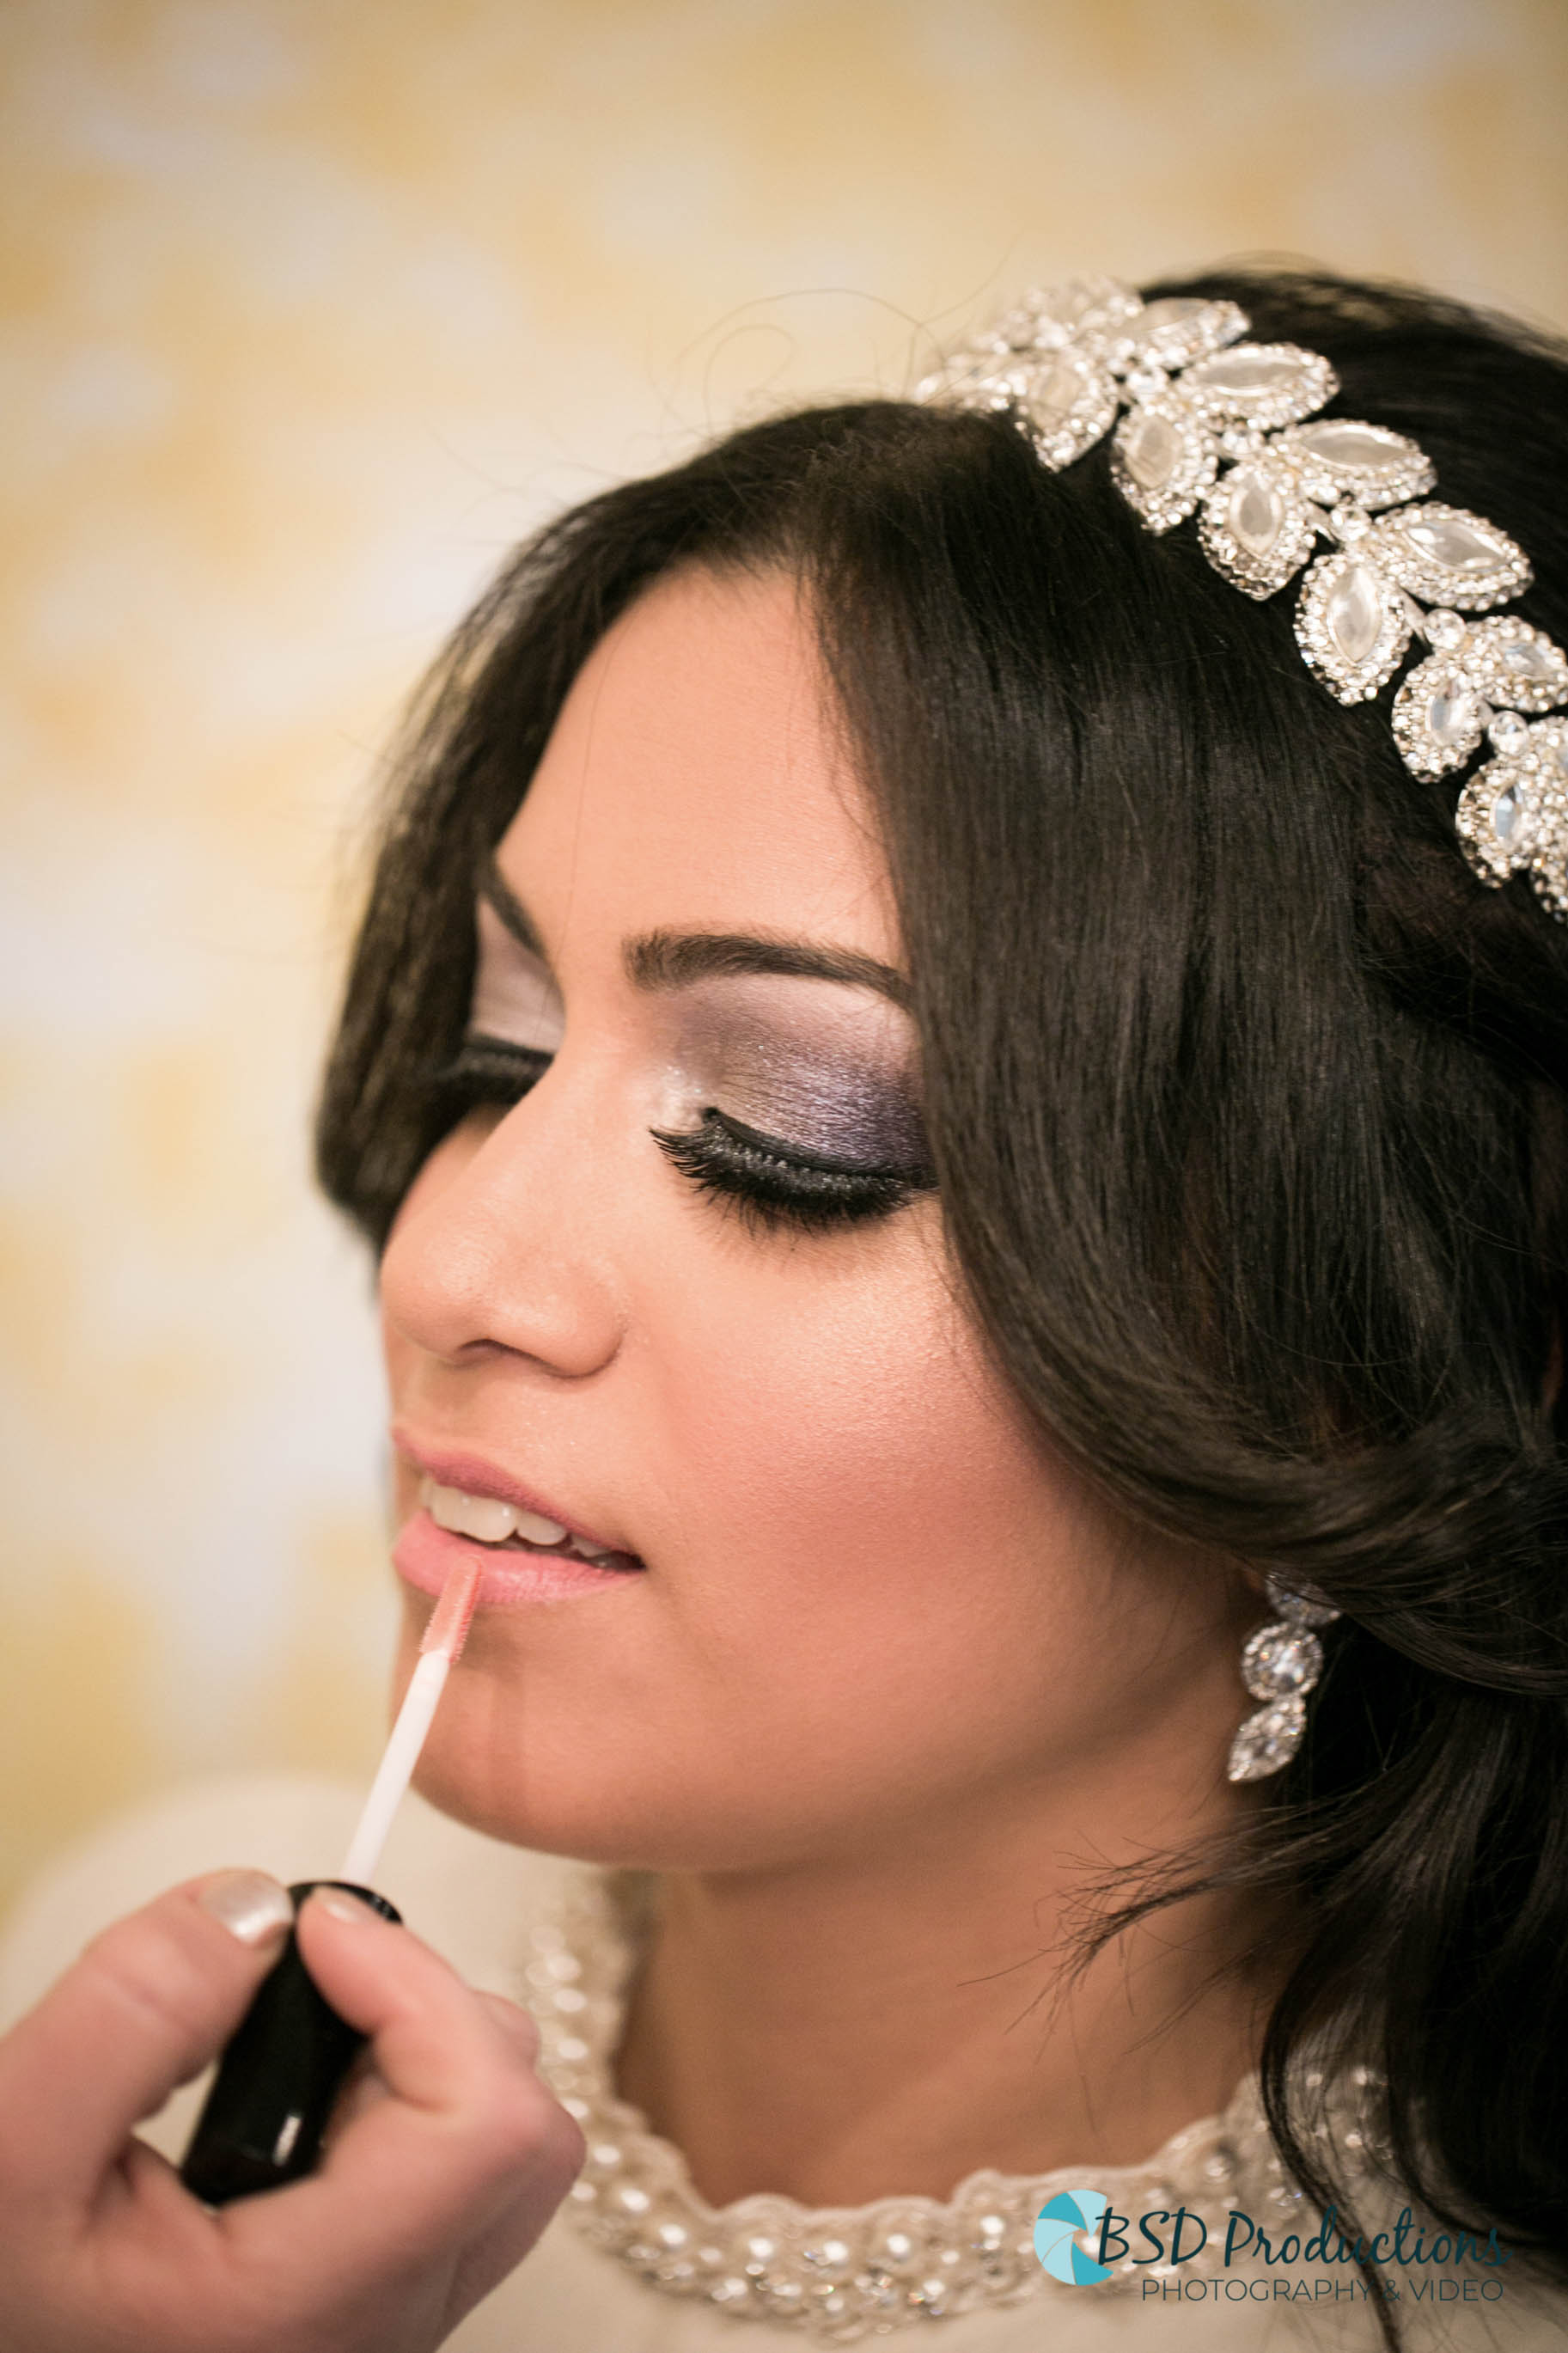 UH5A8461 Wedding – BSD Productions Photography